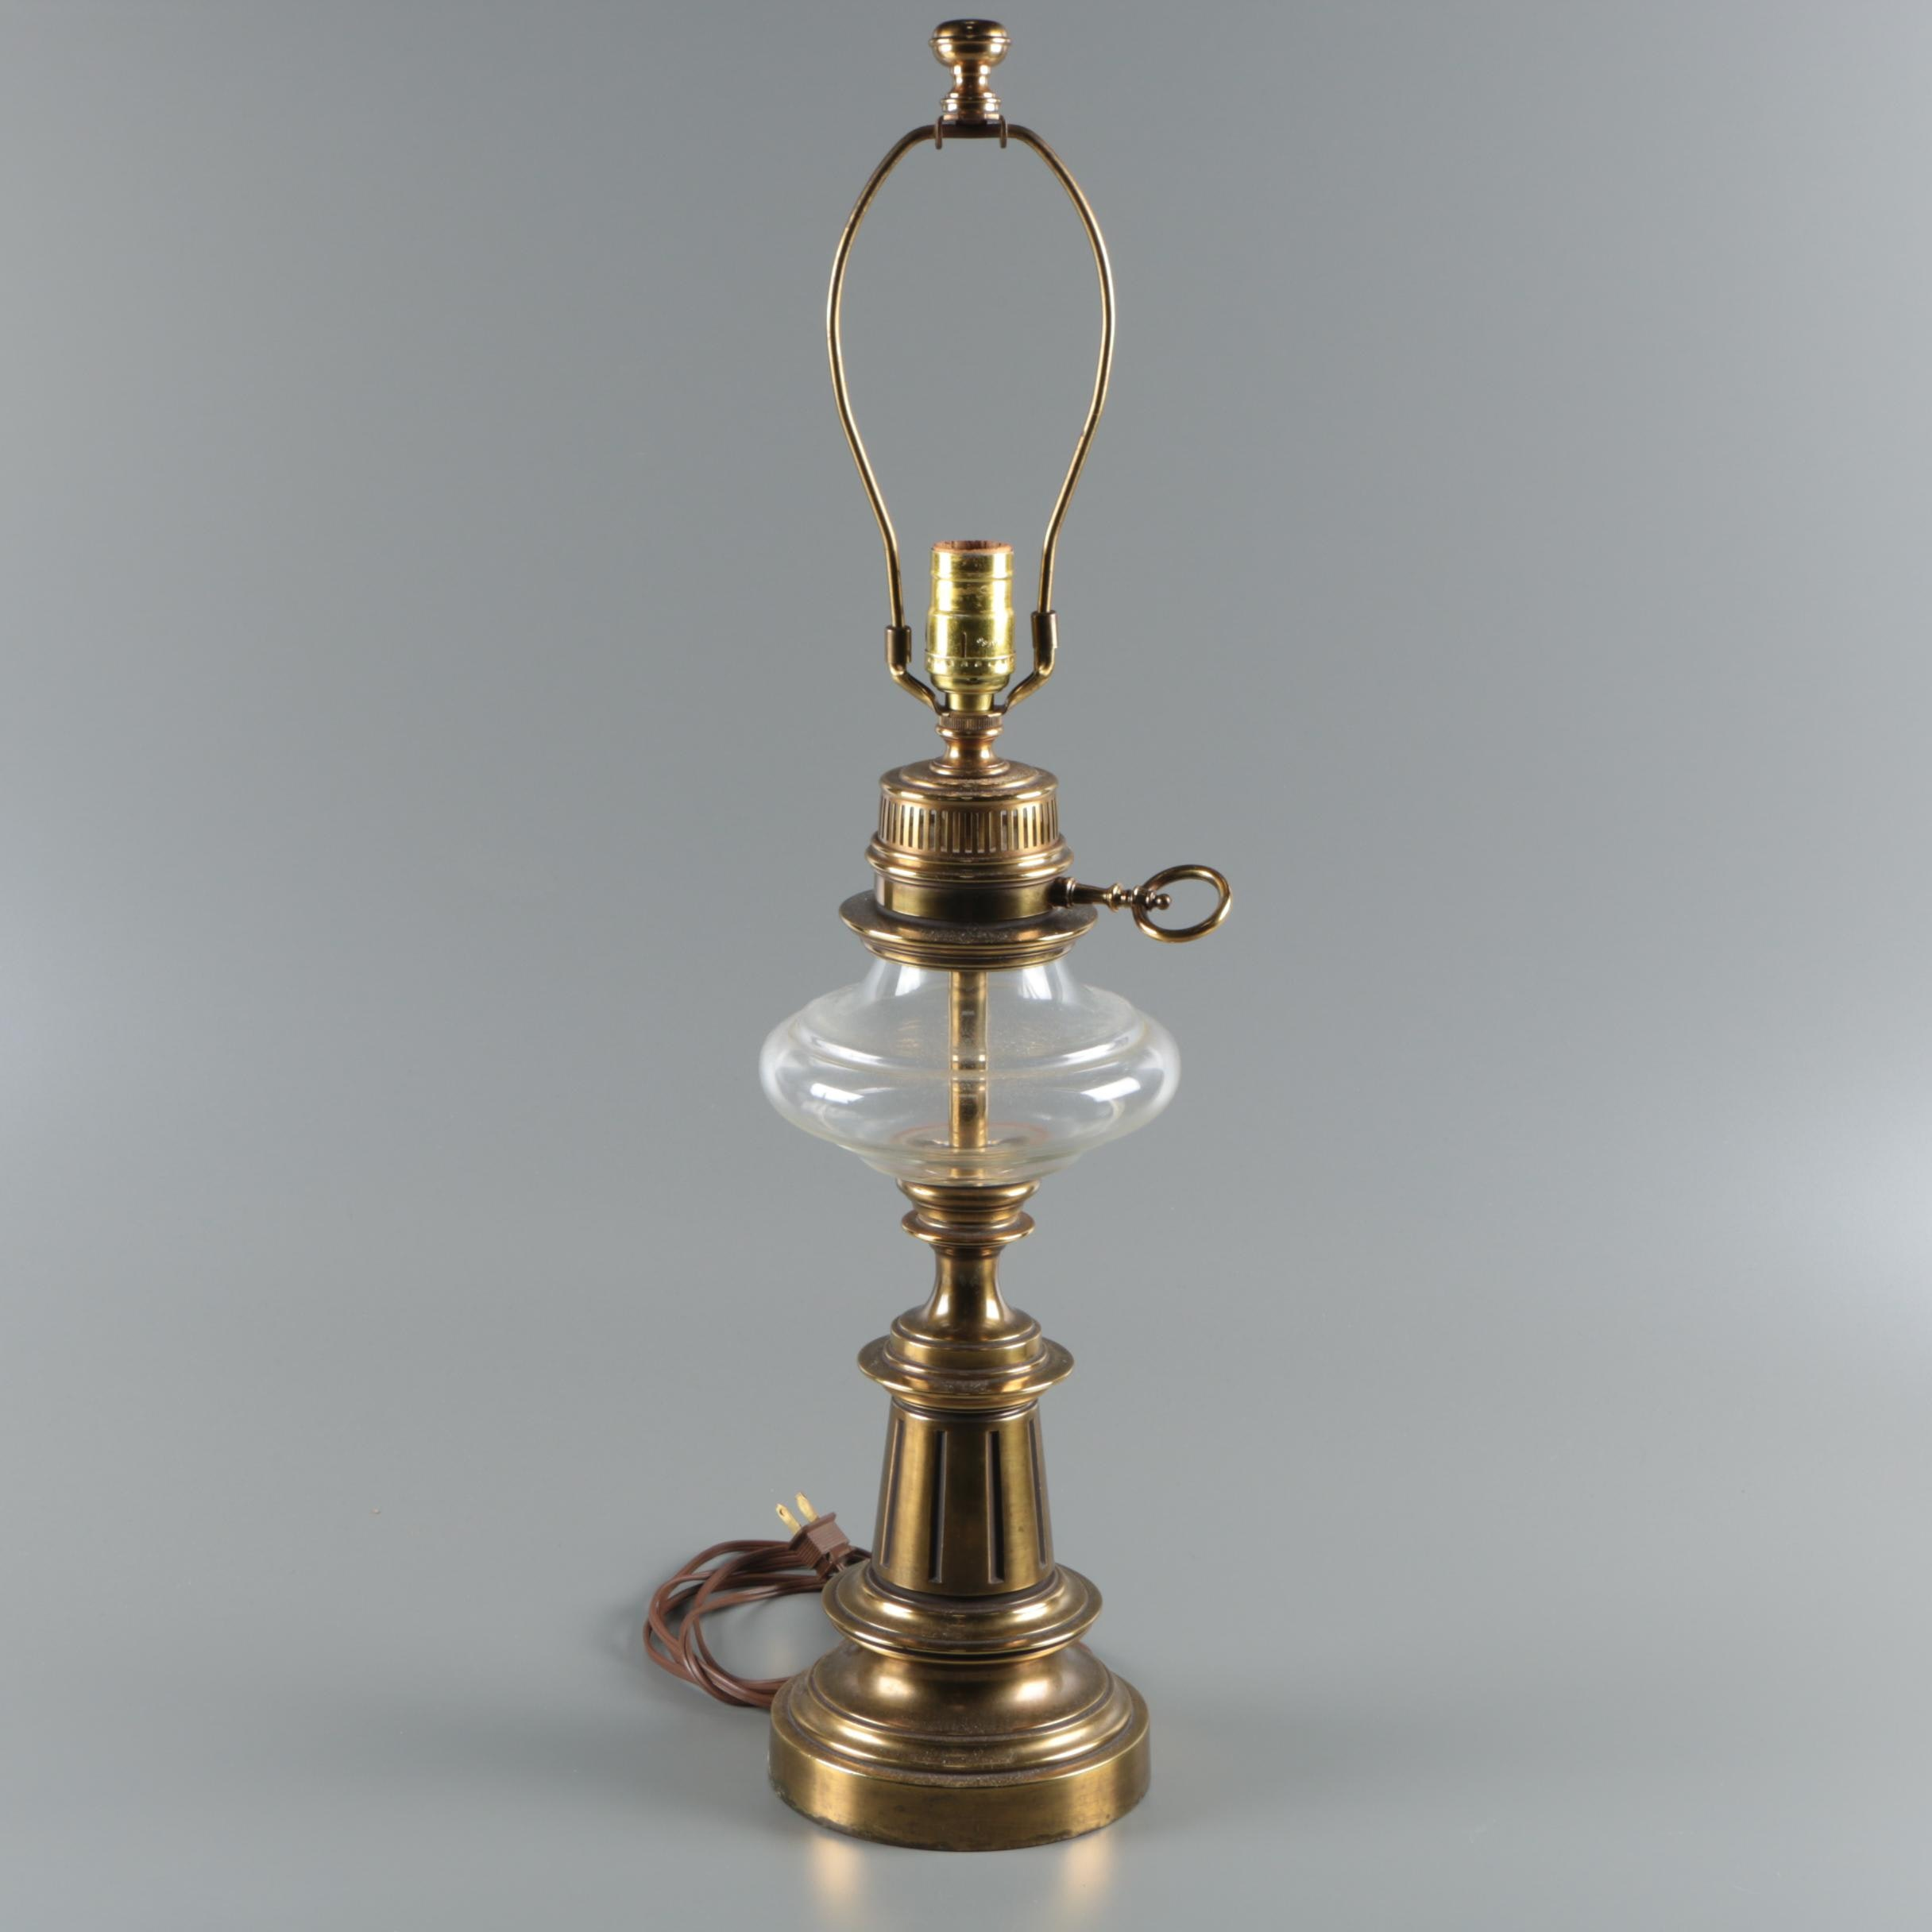 Brass and Glass Lantern Style Electrical Table Lamp